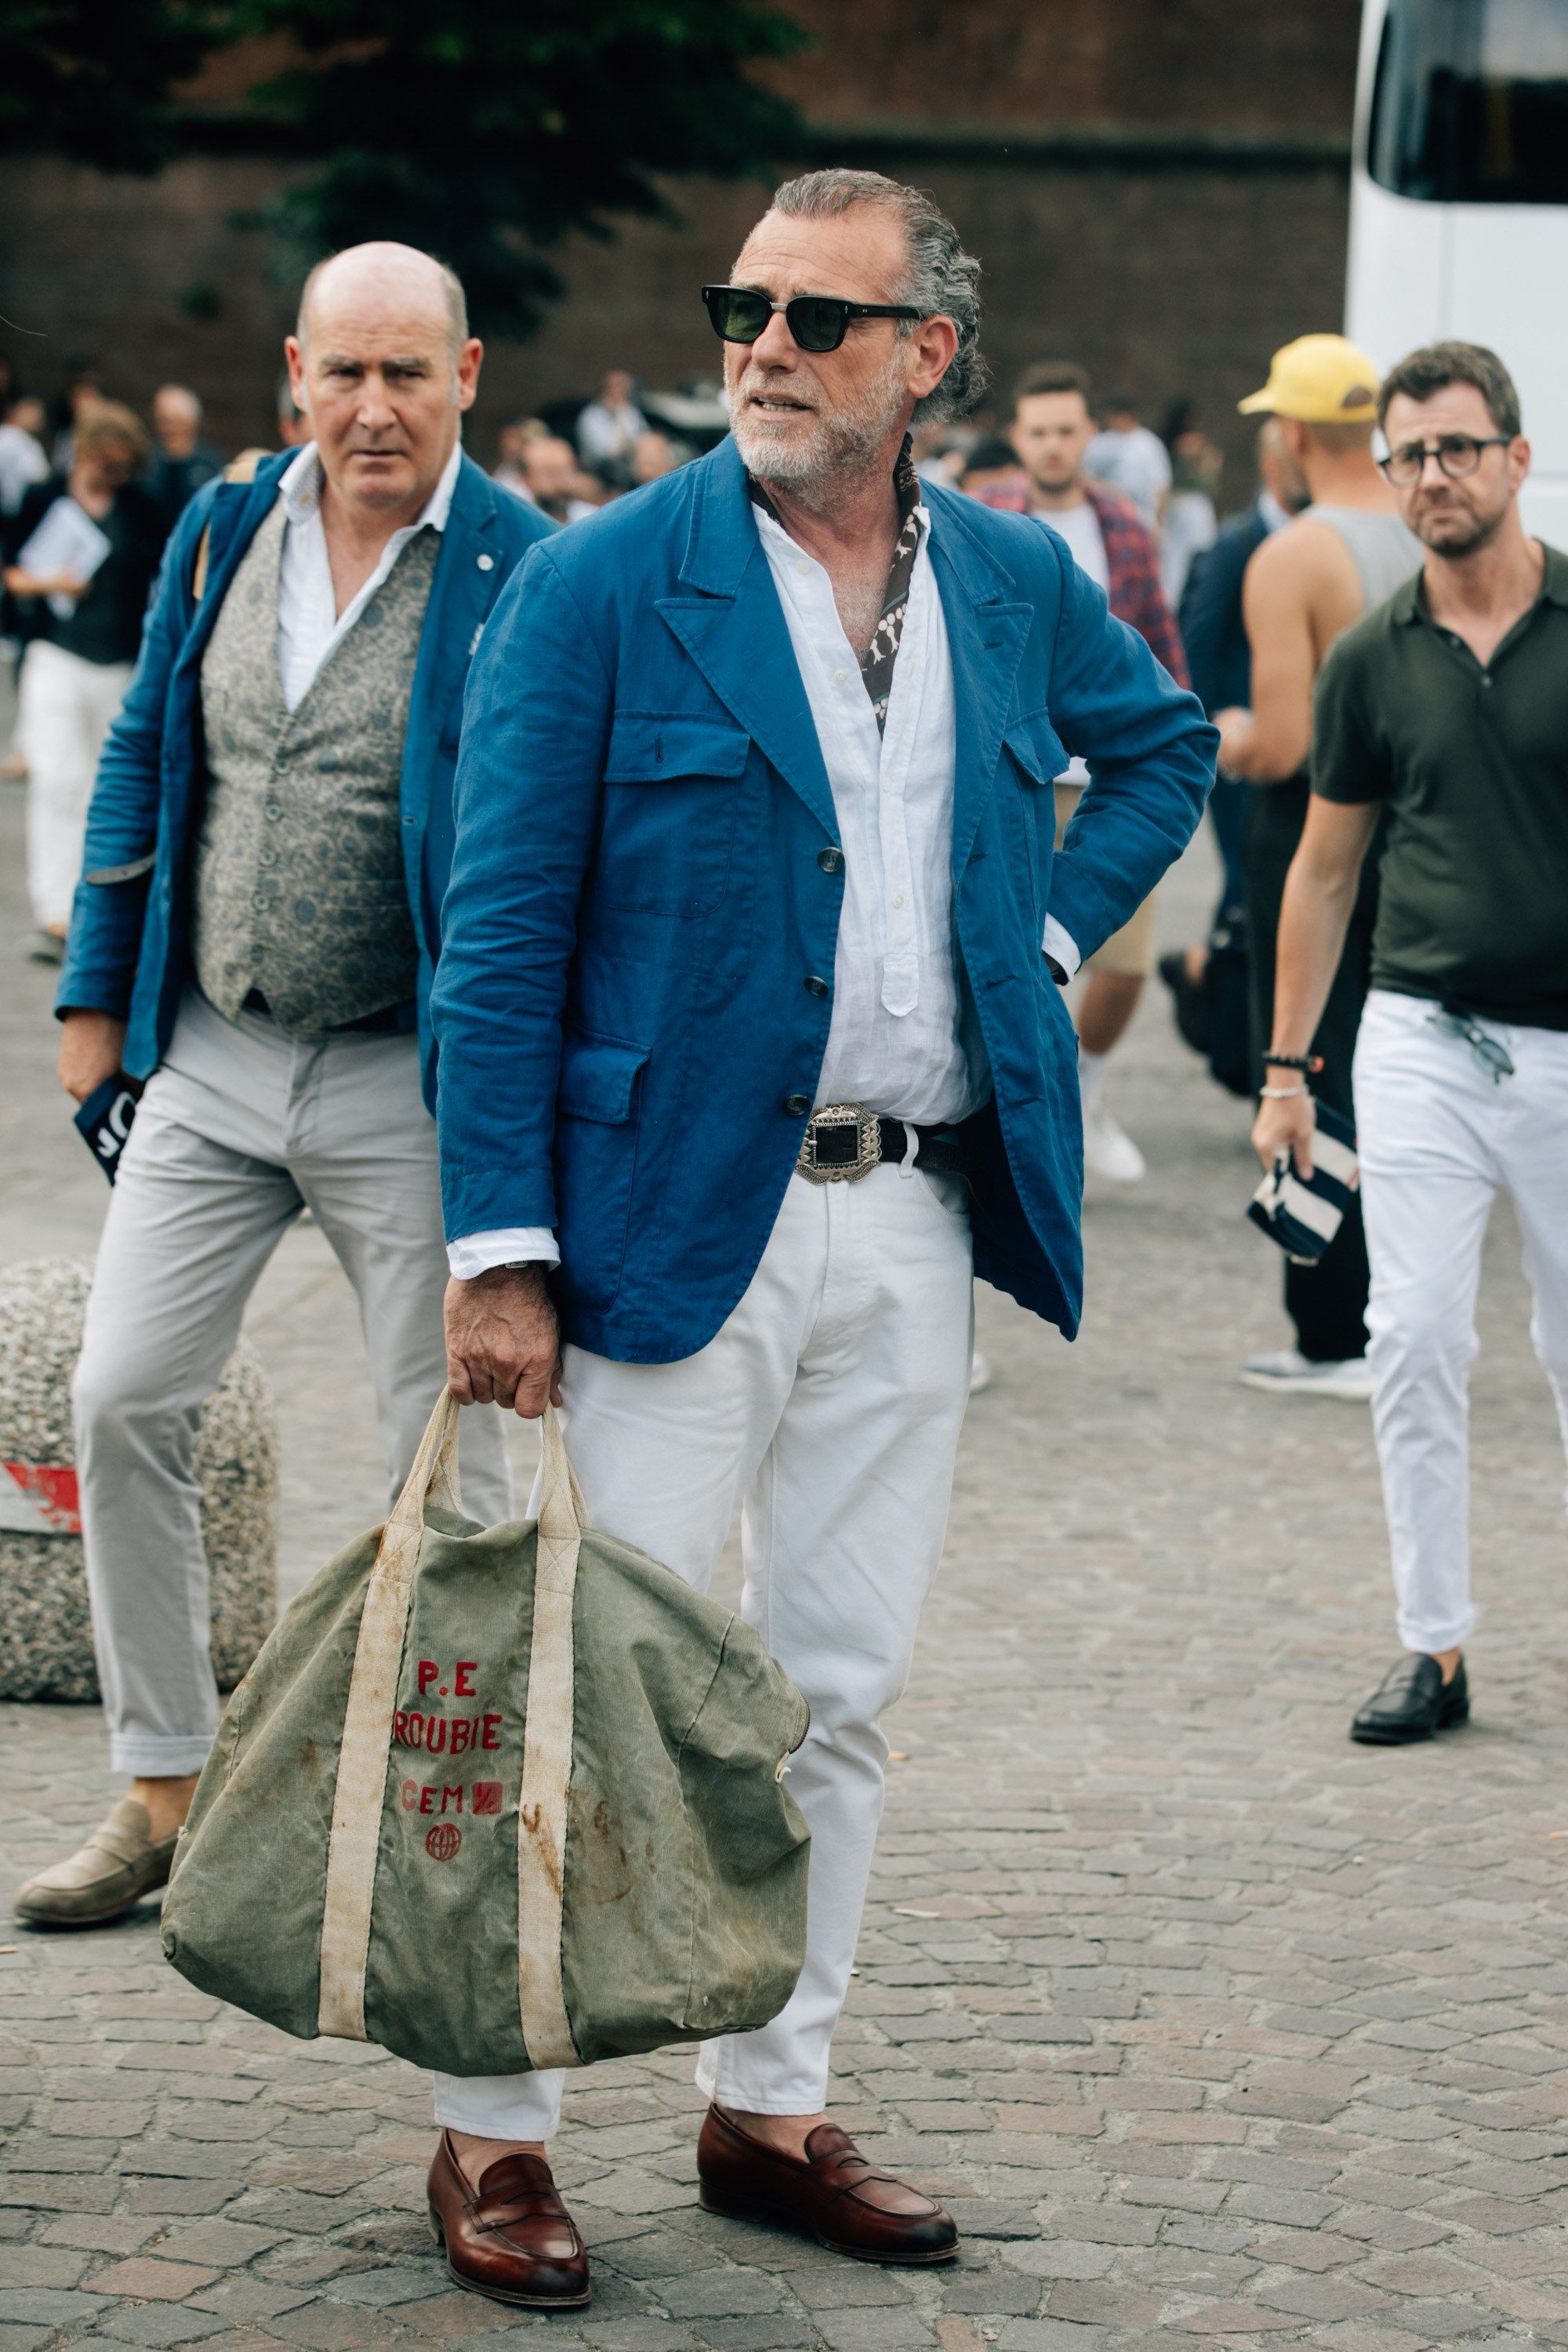 Street Style Fashion: Great Hair to the Artist - Fashables |Italian Mens Summer Street 2013